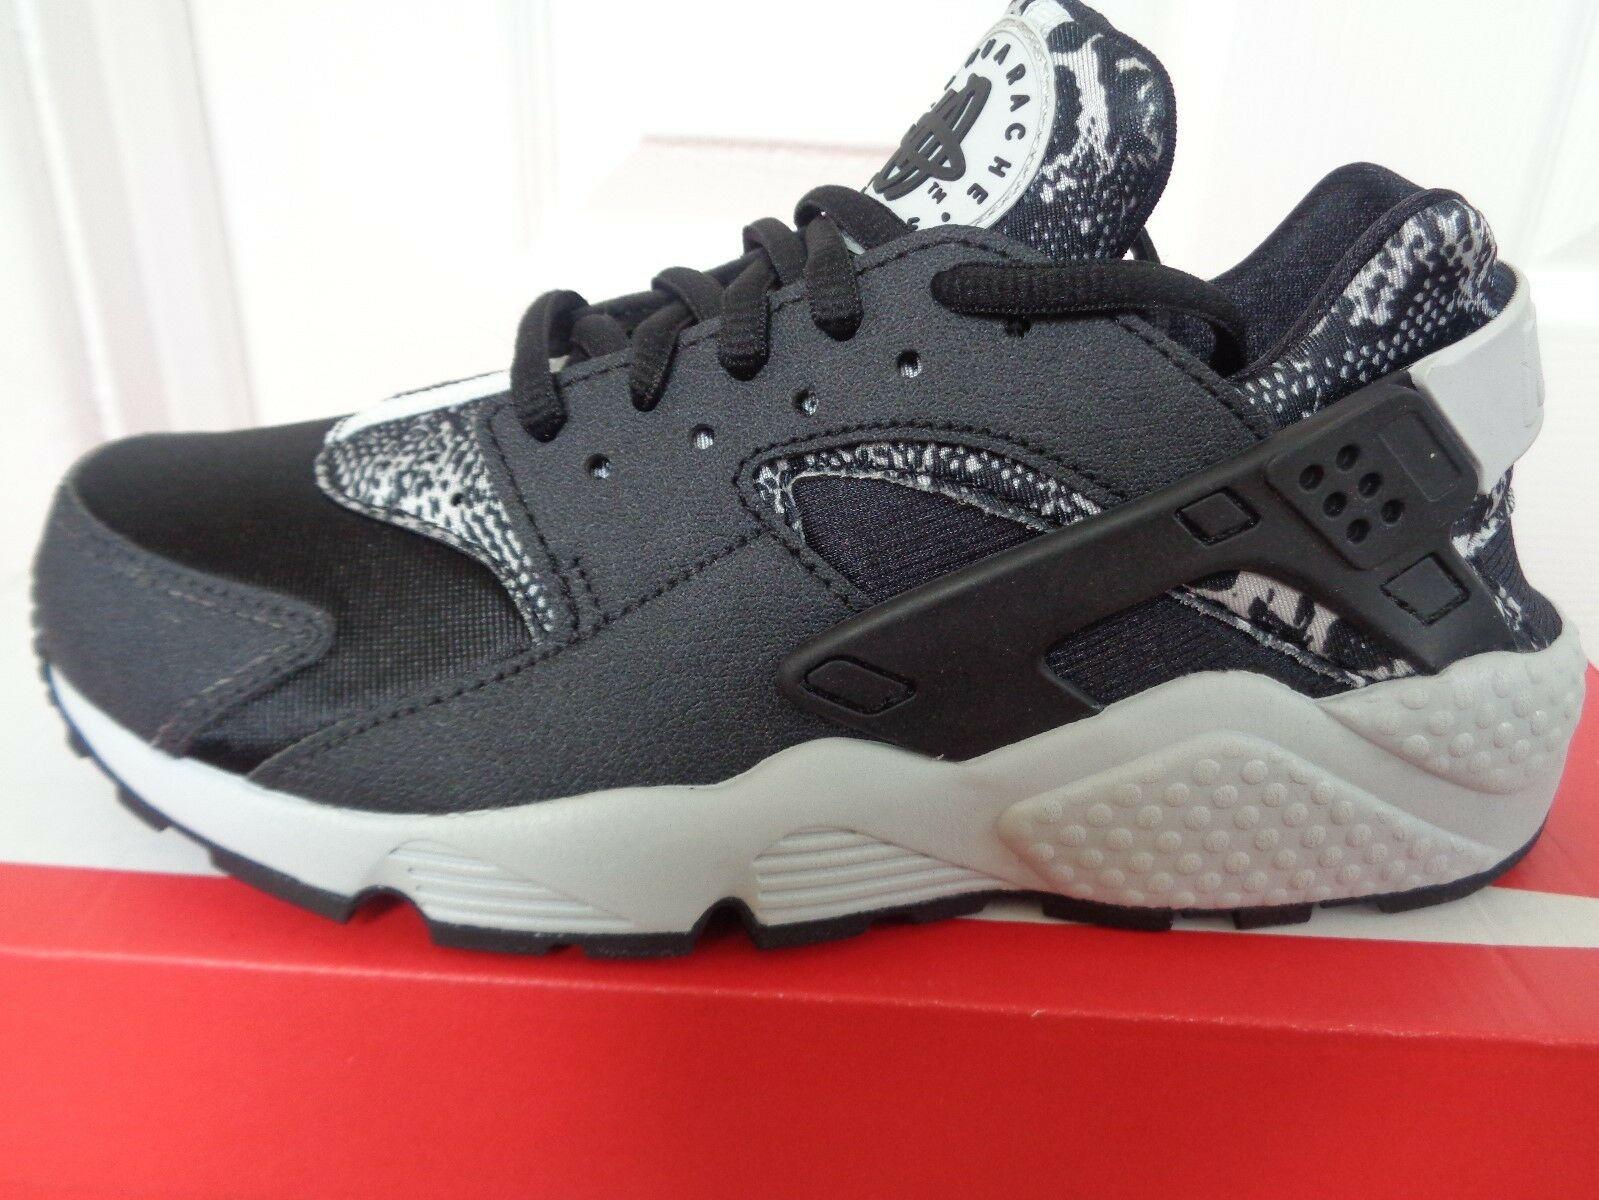 Nike Air Huarache Run Print trainers 003 725076 003 trainers uk 3.5 eu 36.5 us 6 NEW+BOX 2dd72a